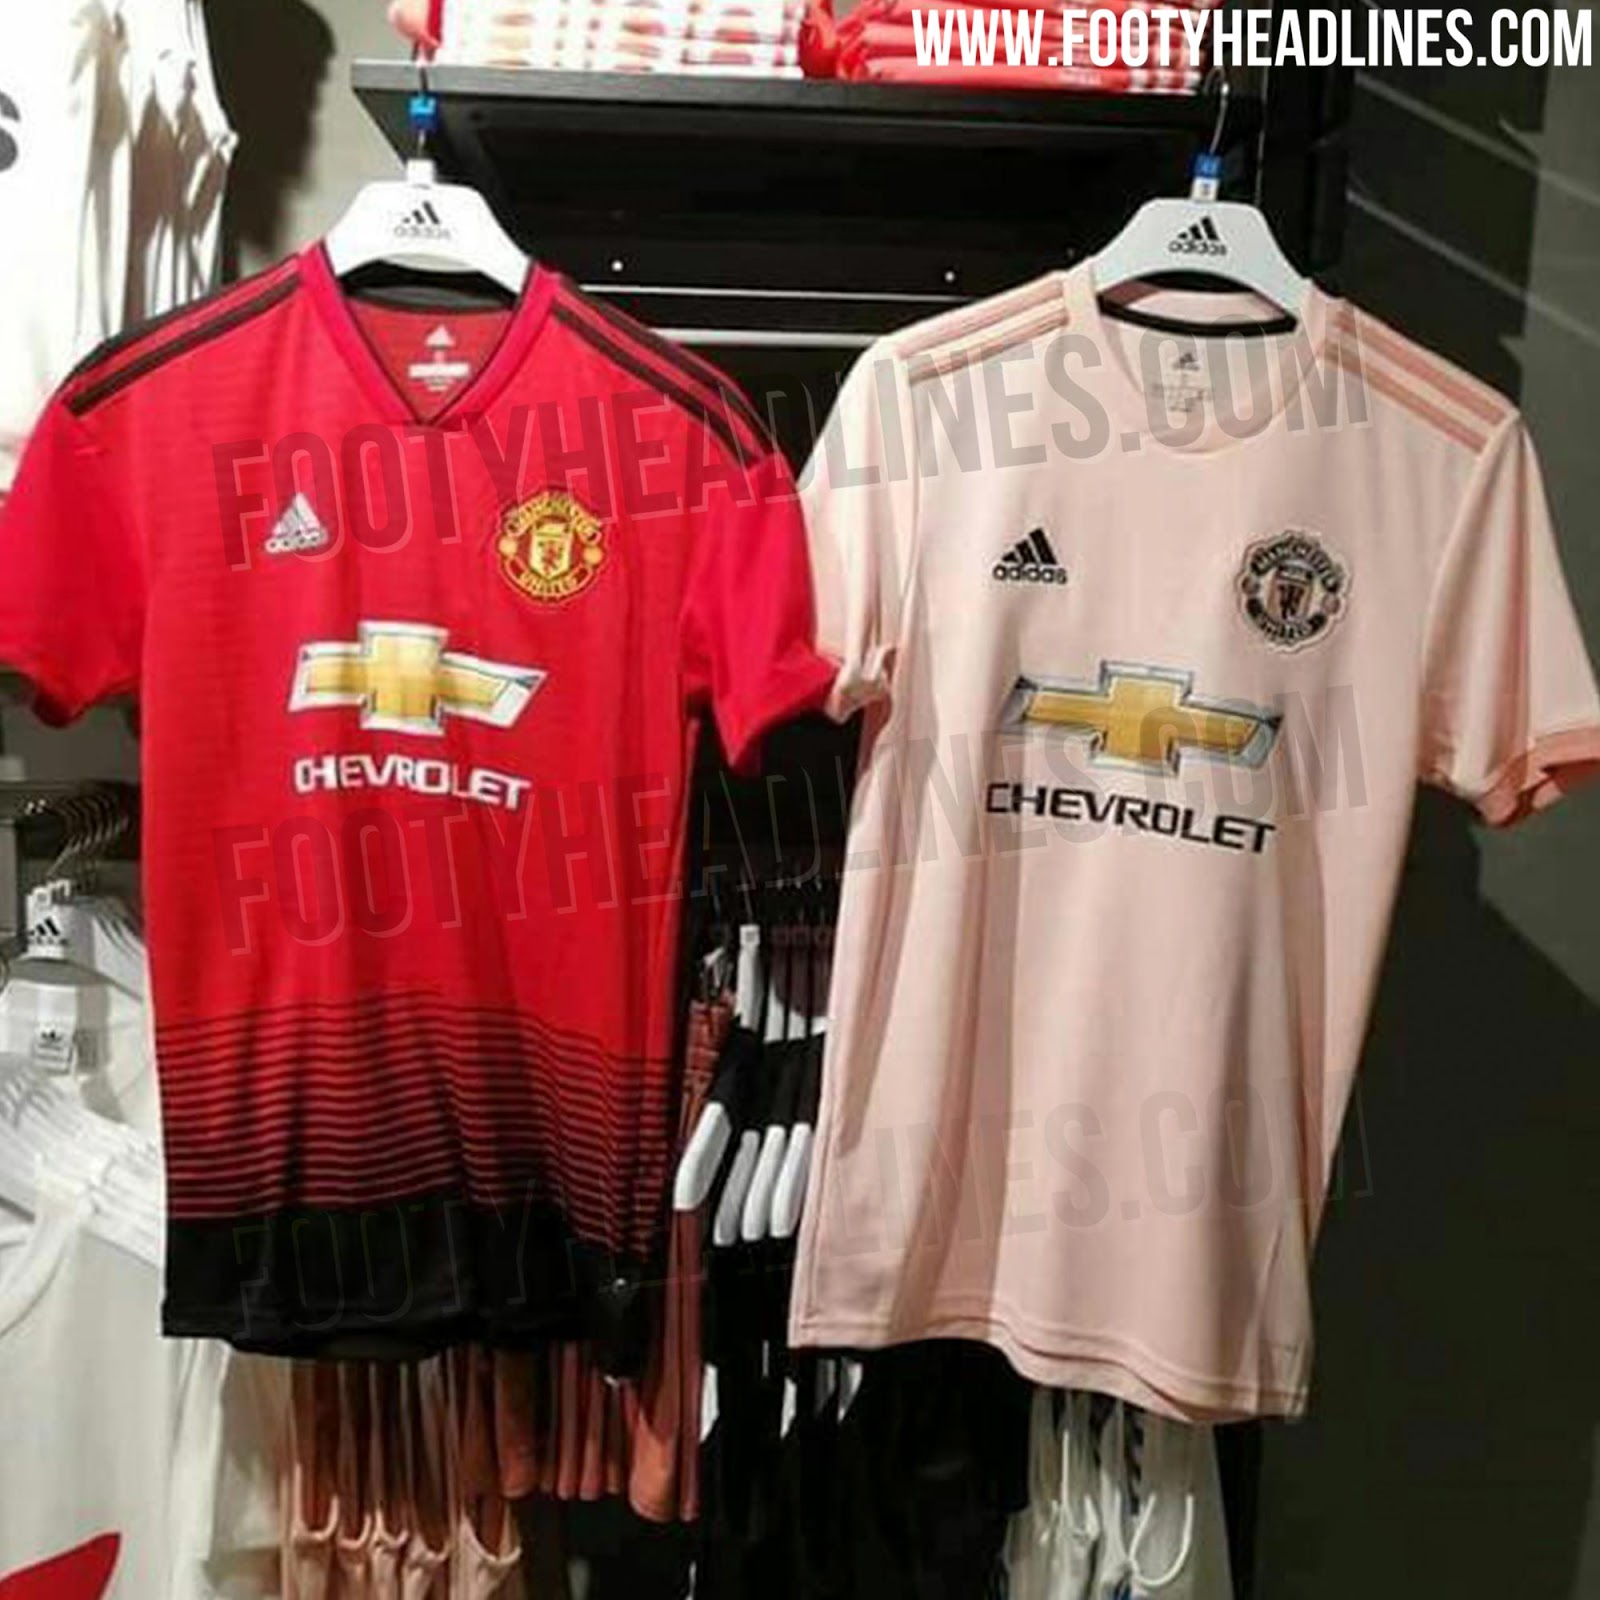 The new Manchester United 18-19 away jersey will hit stores on September 18. 88493394a